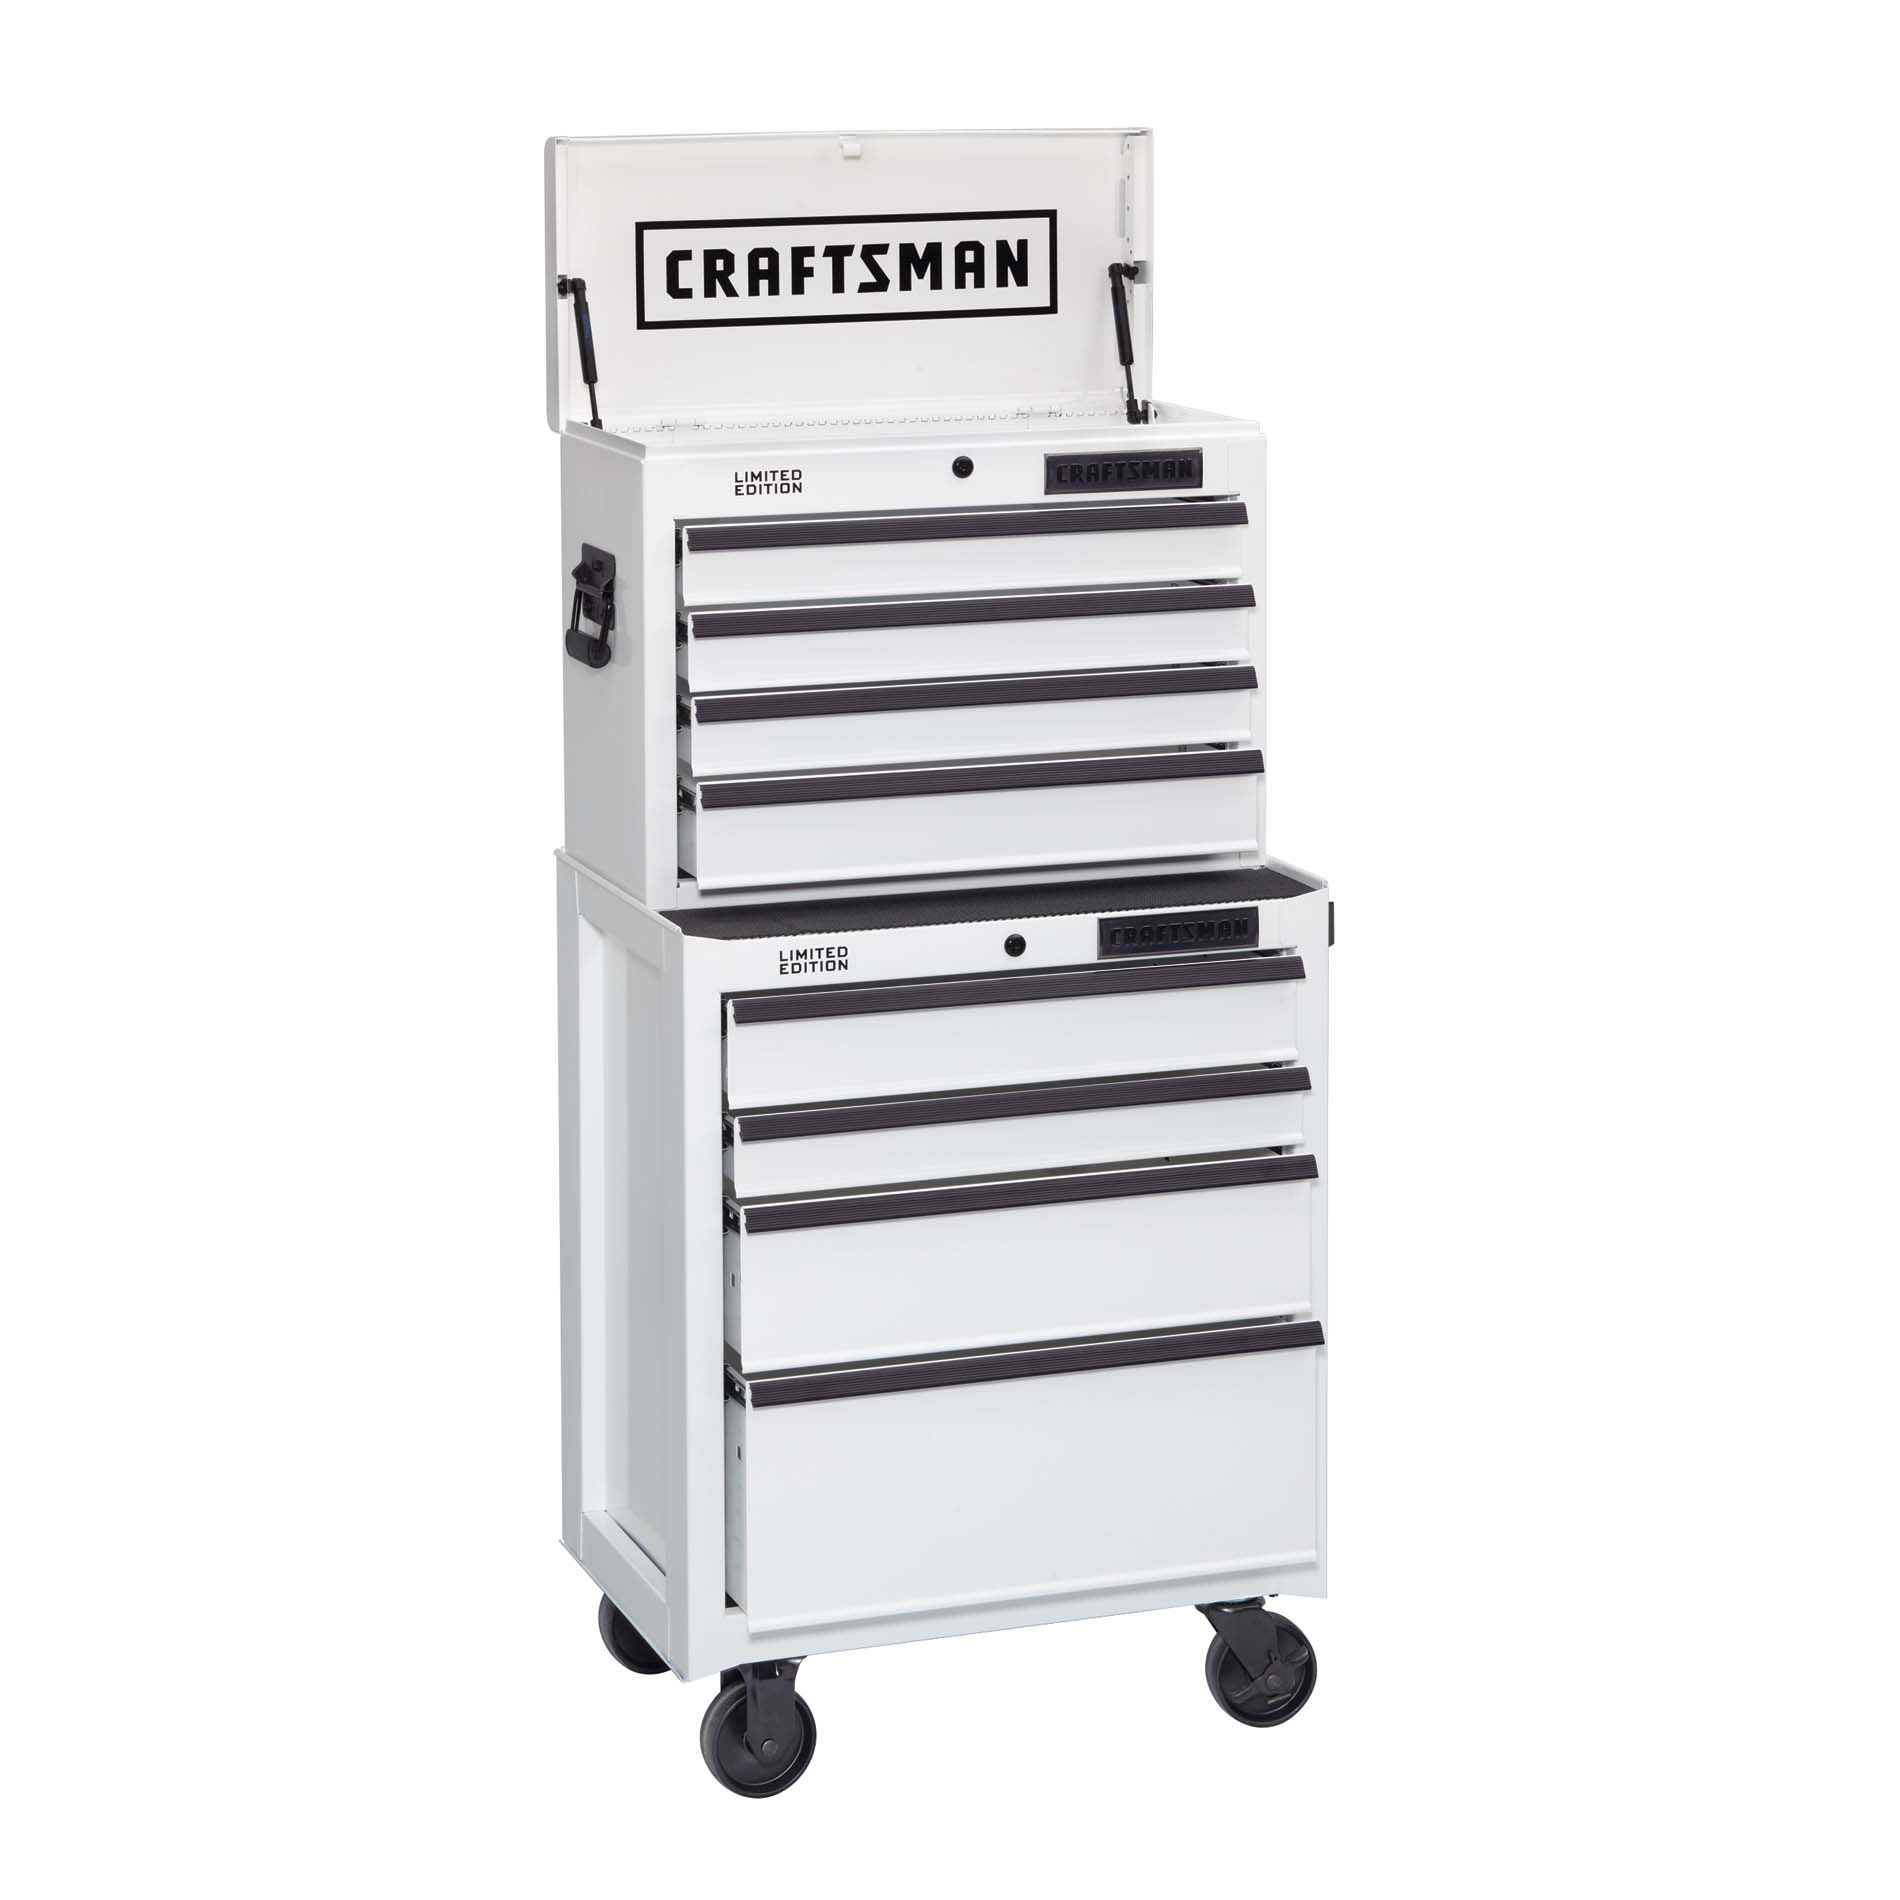 -8-Drawer Ball-Bearing Tool Storage Combo - White Dry Erase (Limited Edition)